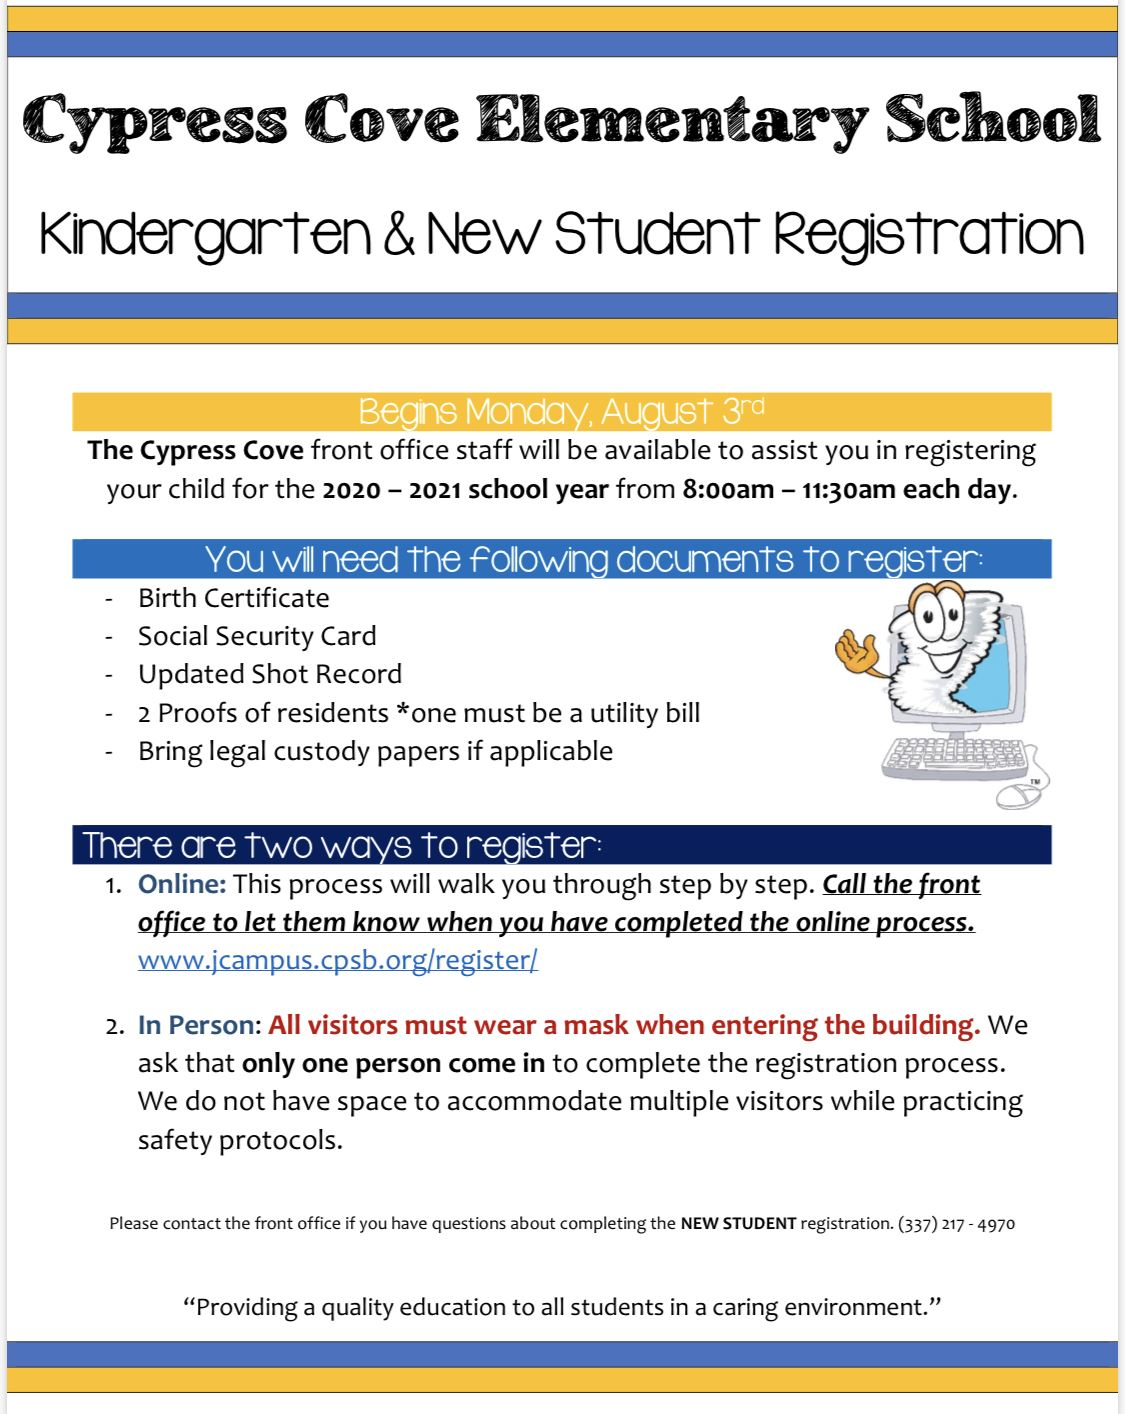 Kindergarten & New Student Registration